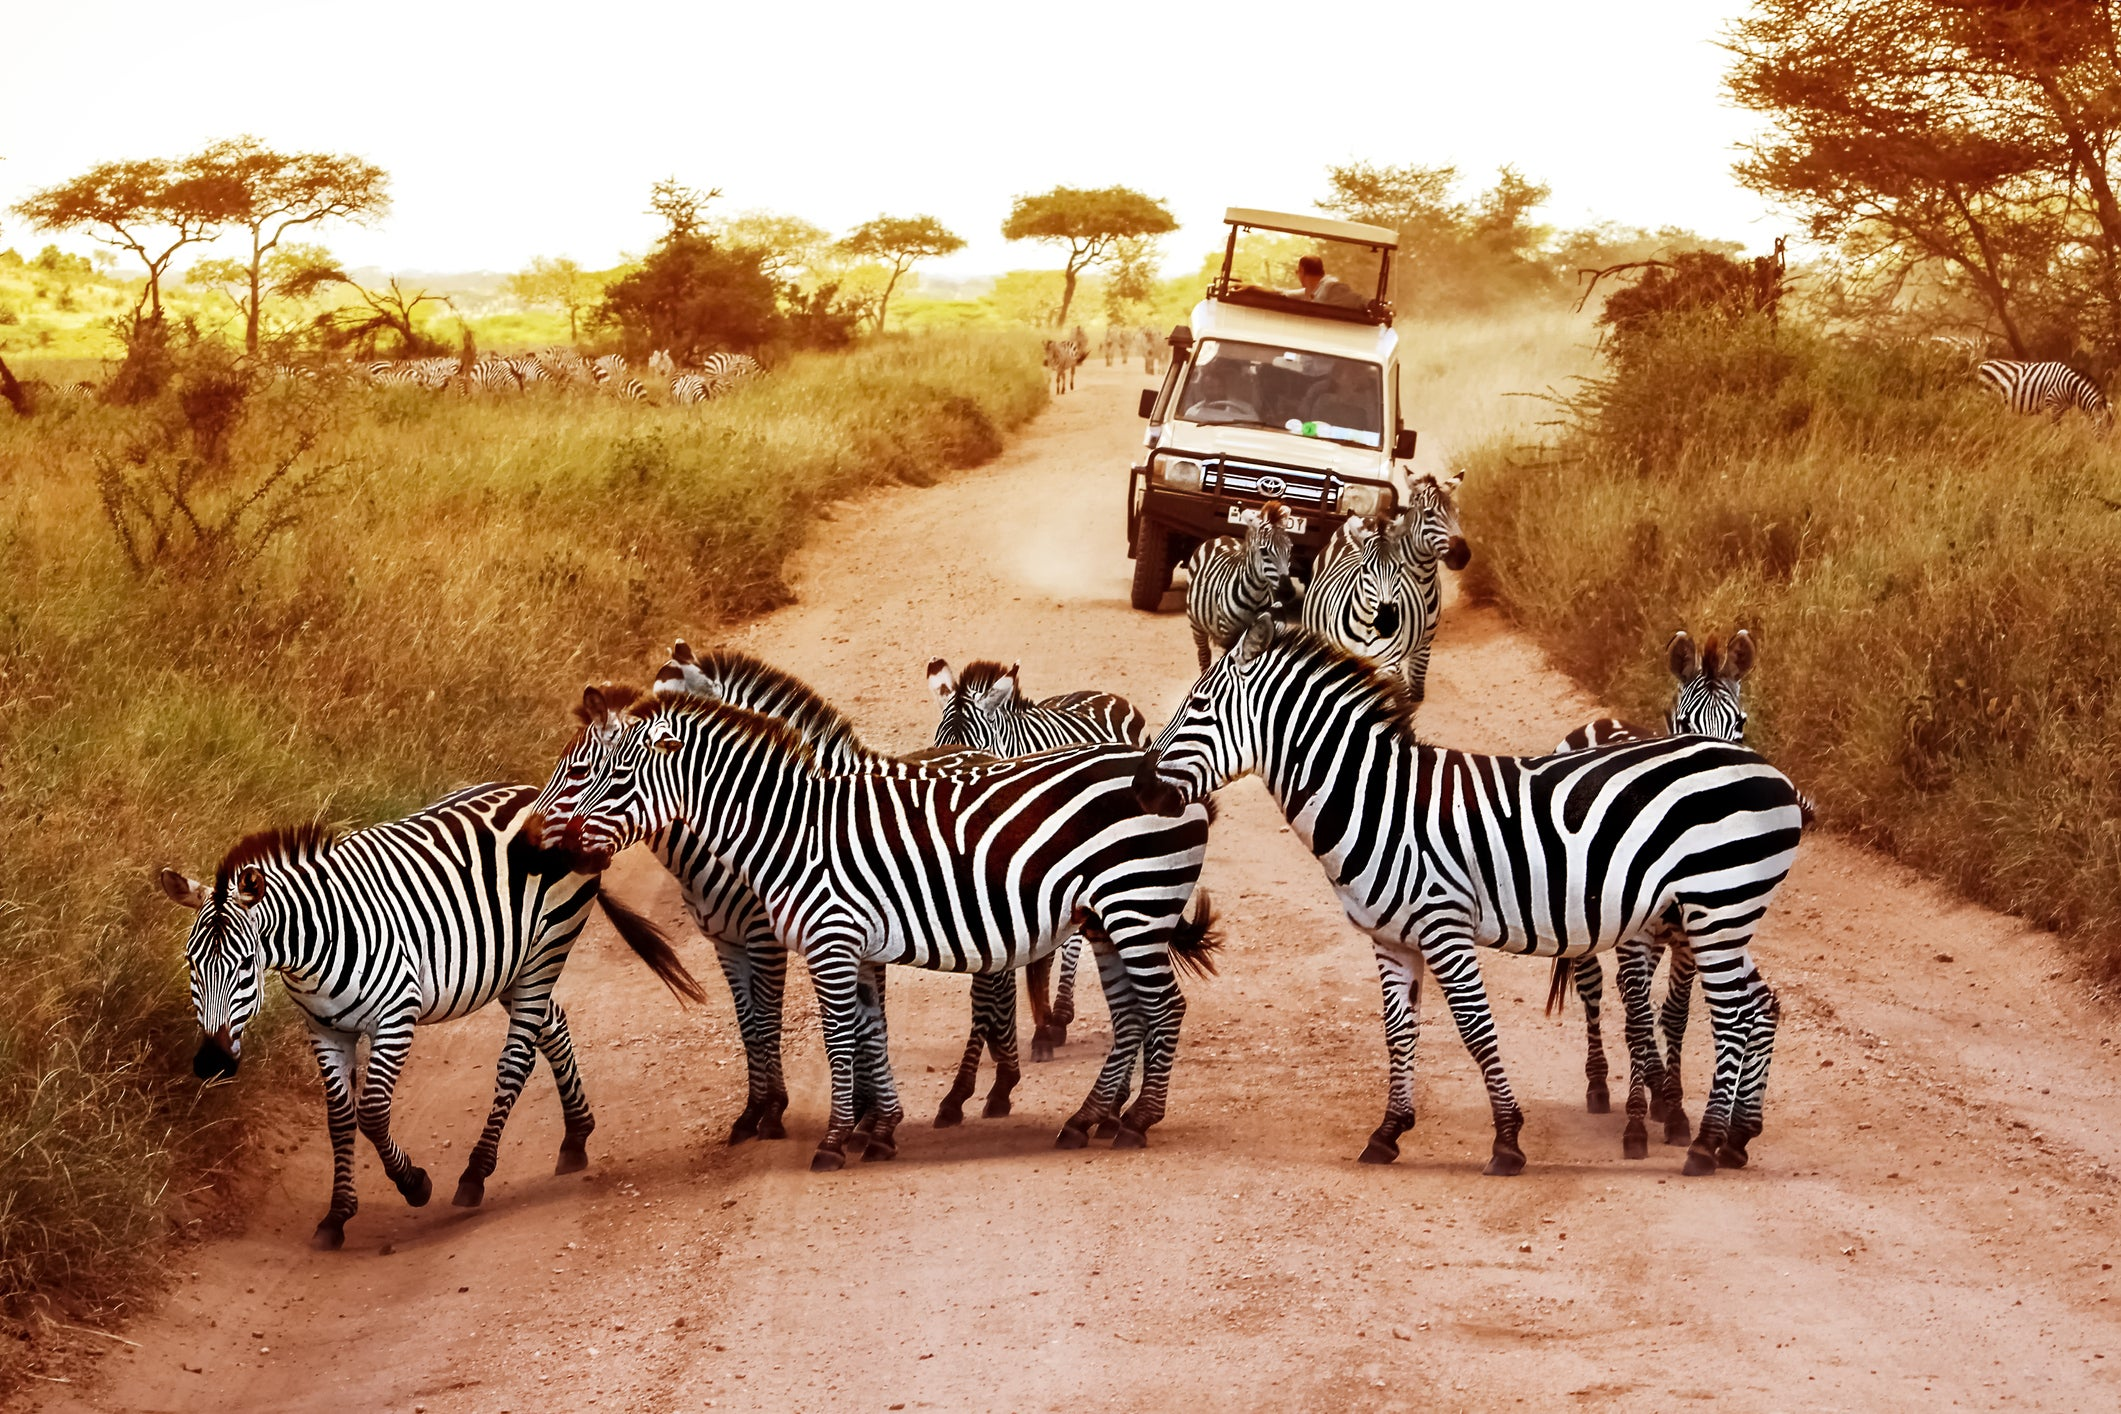 Dreaming of an African safari: How I'll book my bucket-list trip to Tanzania on miles and points - The Points Guy